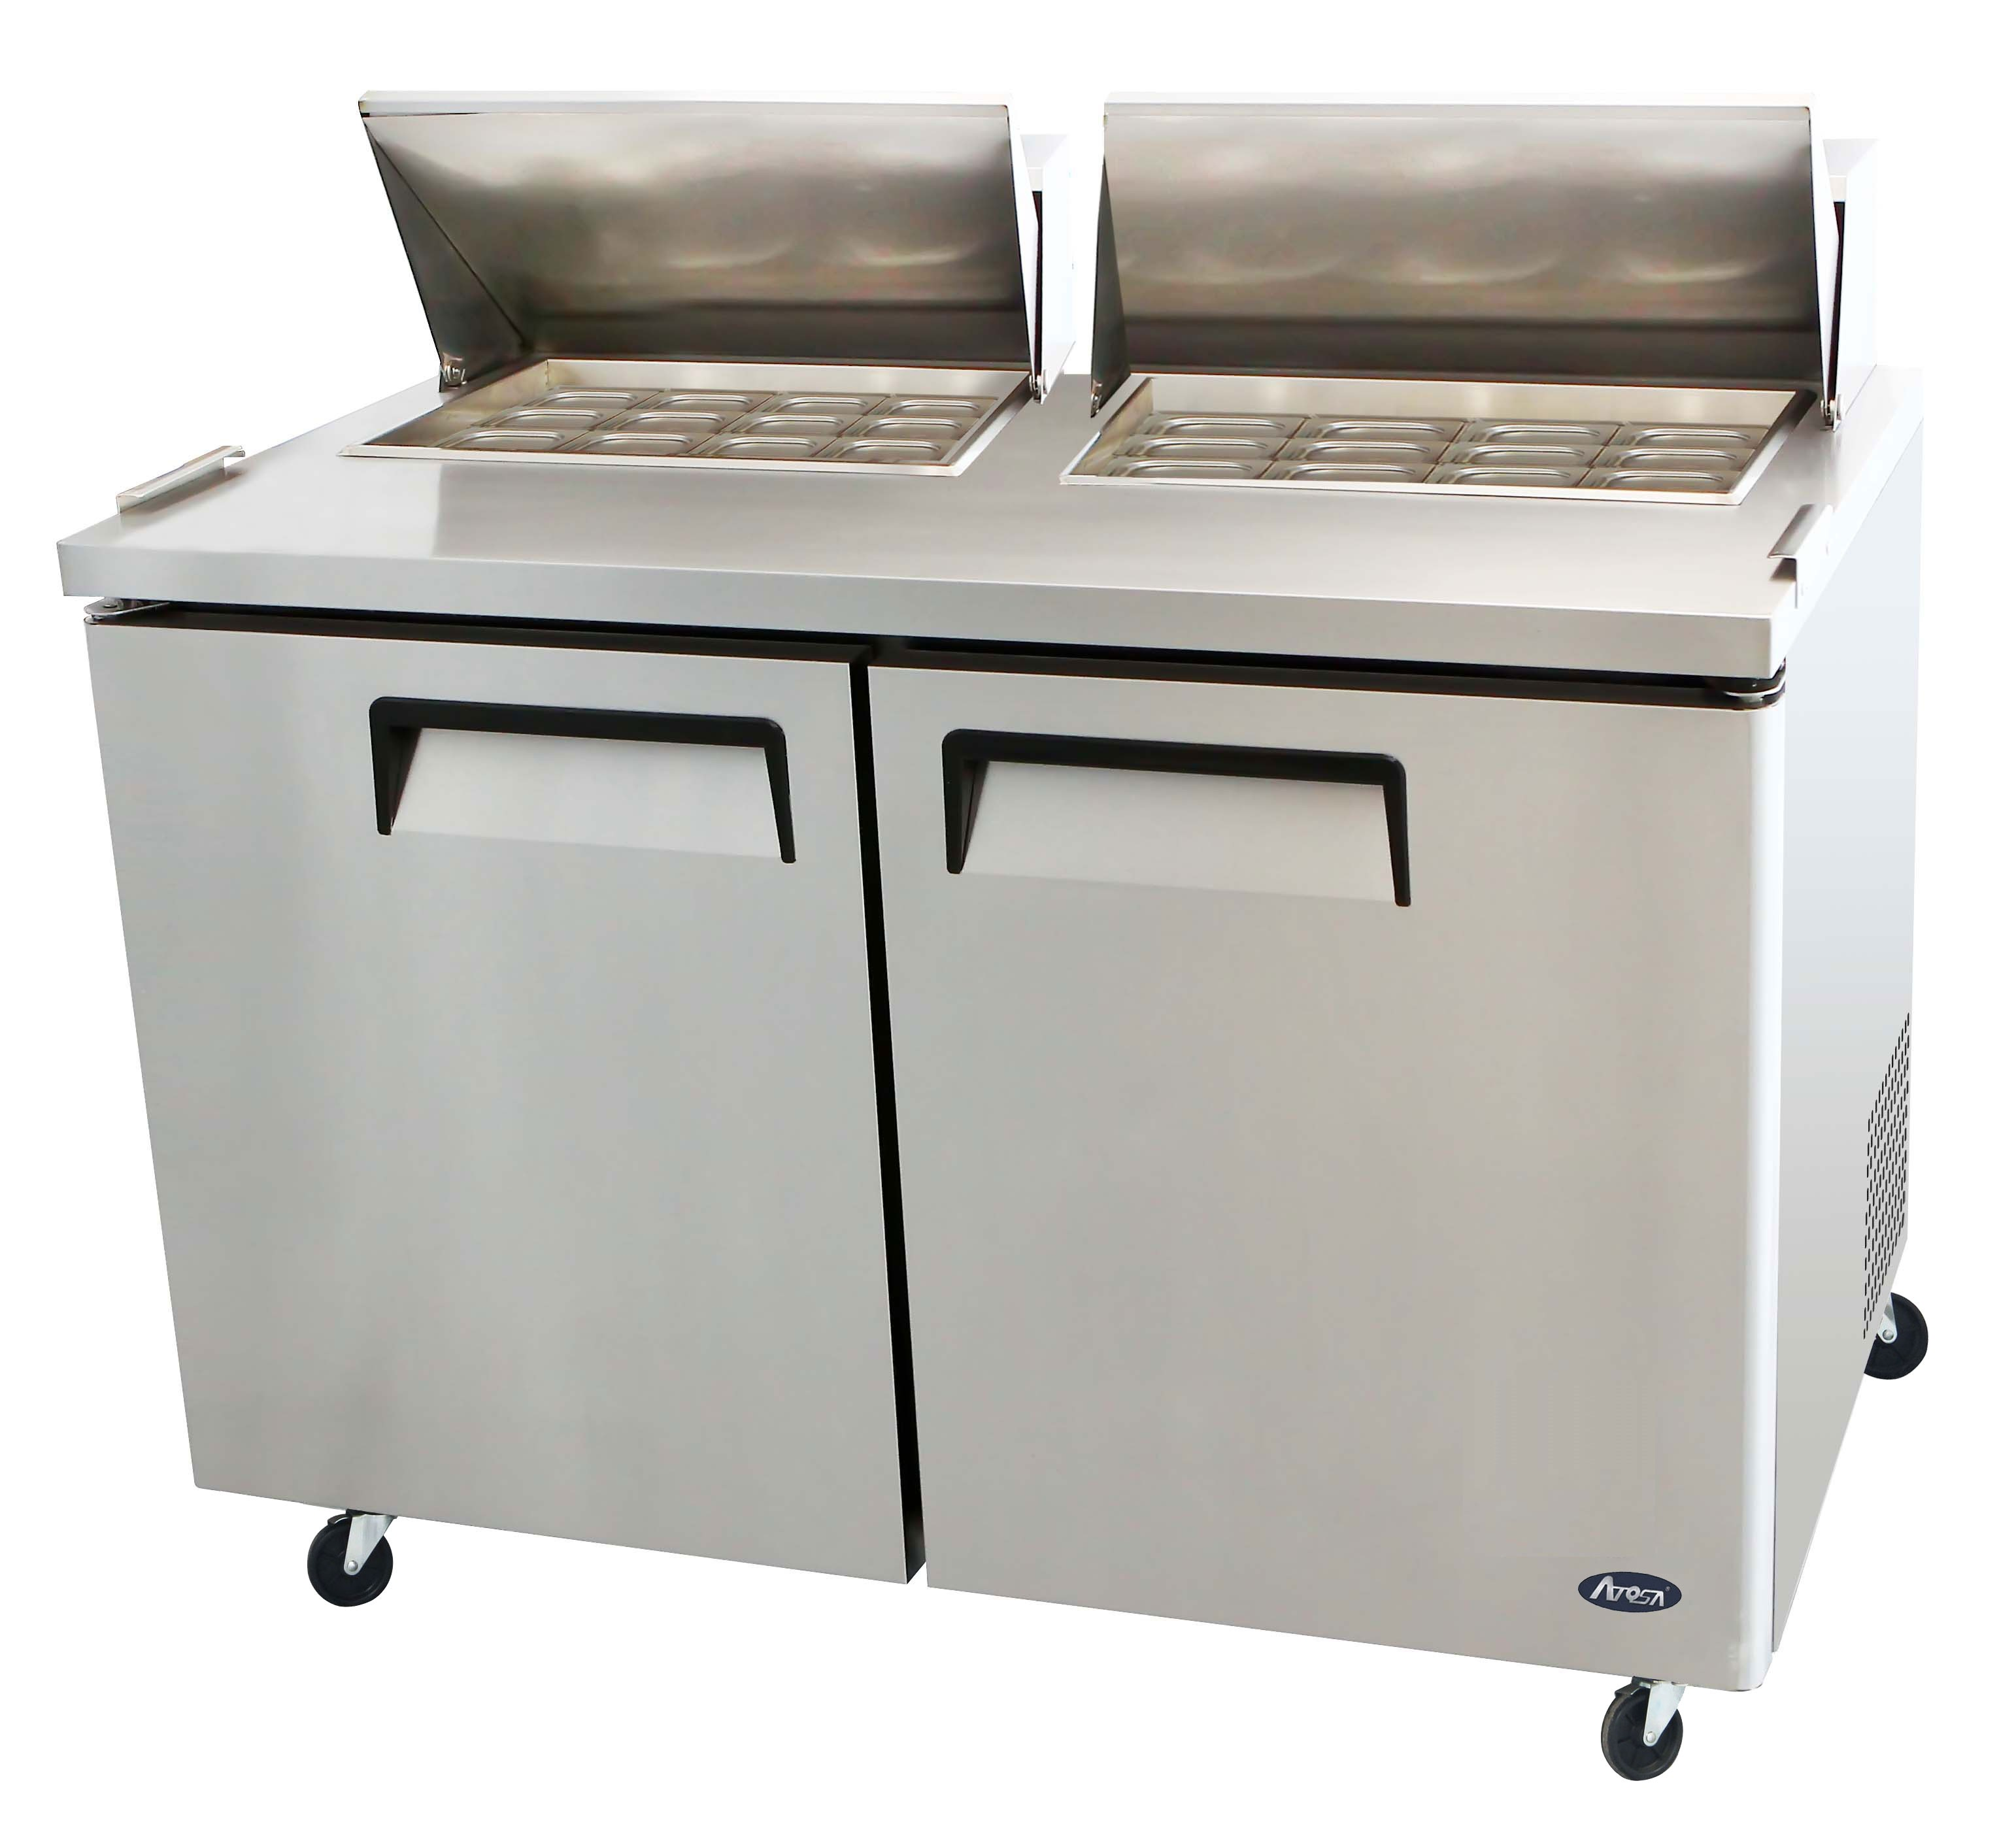 Atosa MSF Mega Top Sandwich Prep Table CALL FOR BETTER - Commercial prep table refrigerator